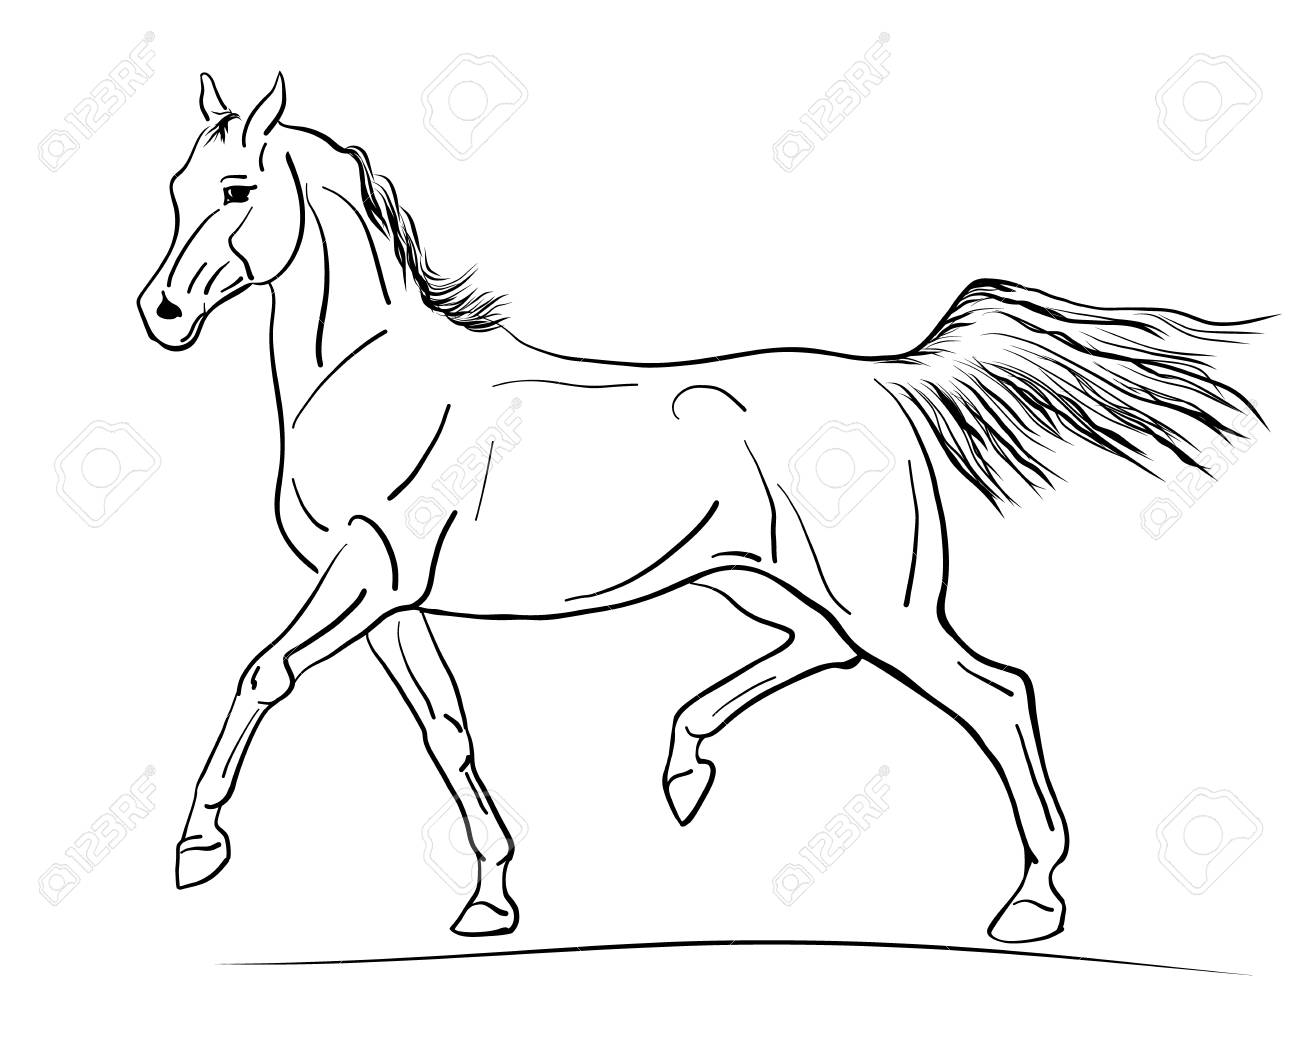 A Sketch Of A Trotting Arabian Horse Royalty Free Cliparts Vectors And Stock Illustration Image 111997685